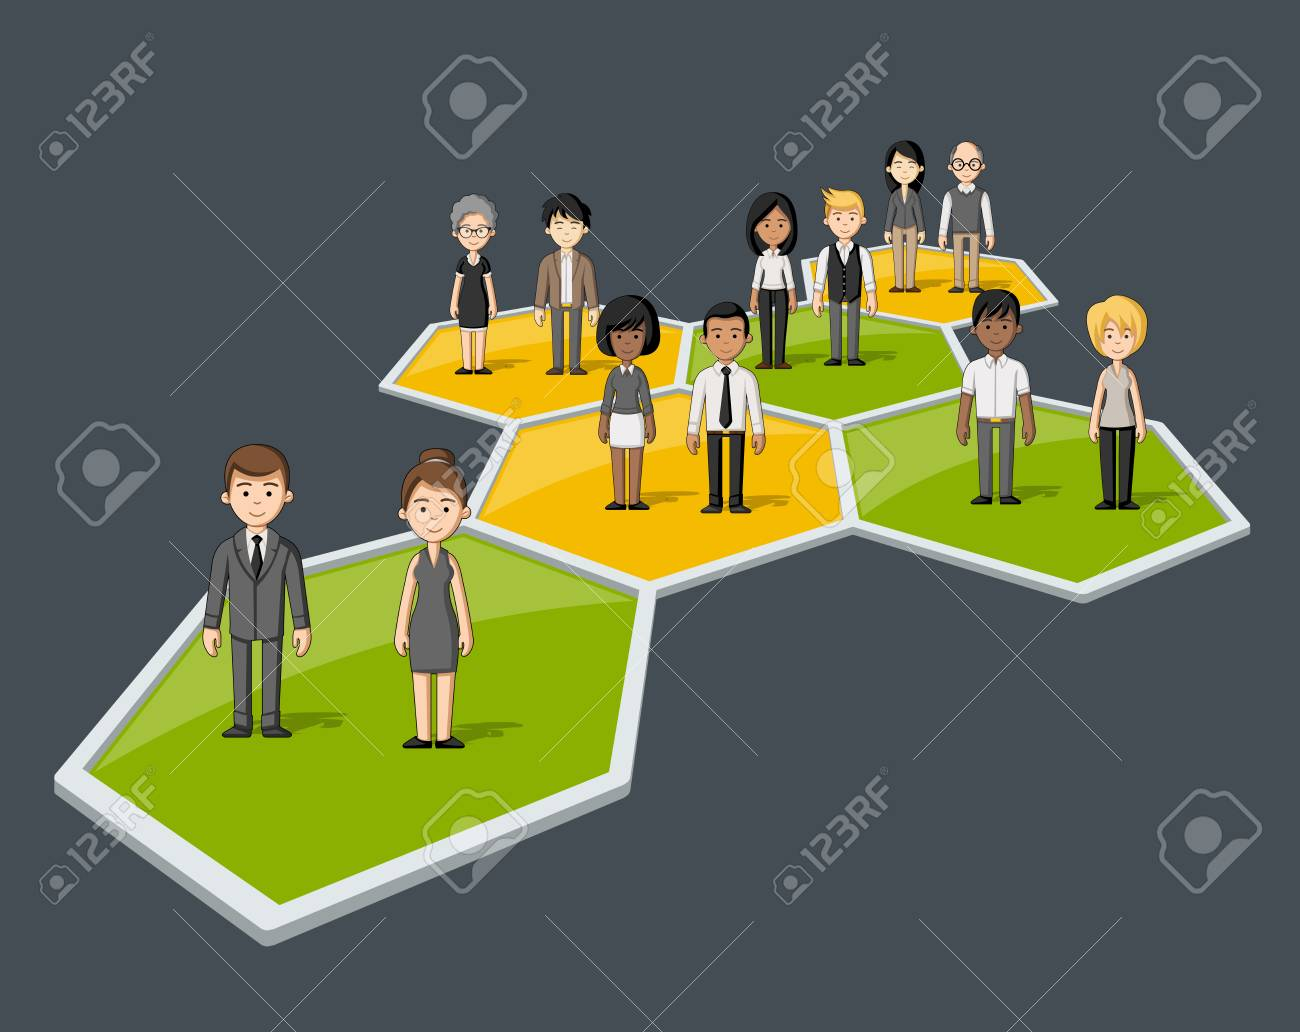 Business people connected over bee hive blocks - 58503911